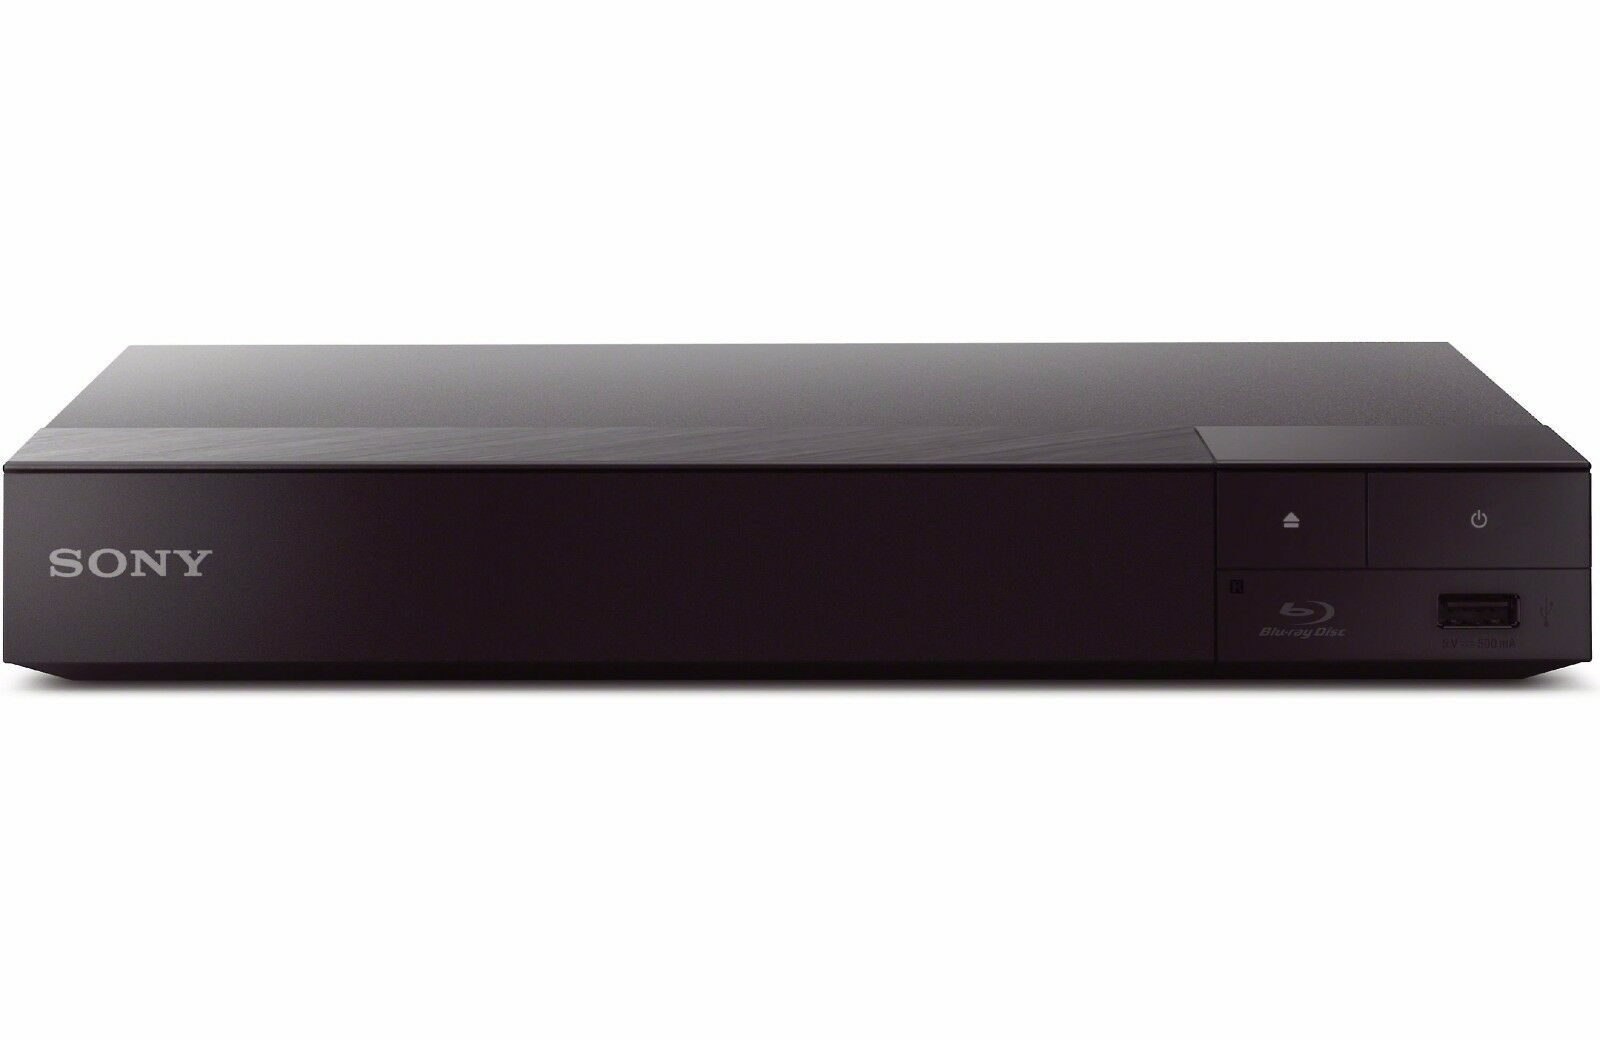 Sony BDP-S6700 1 Disc 3D Blu-ray Disc Player - 1080p - Dolby